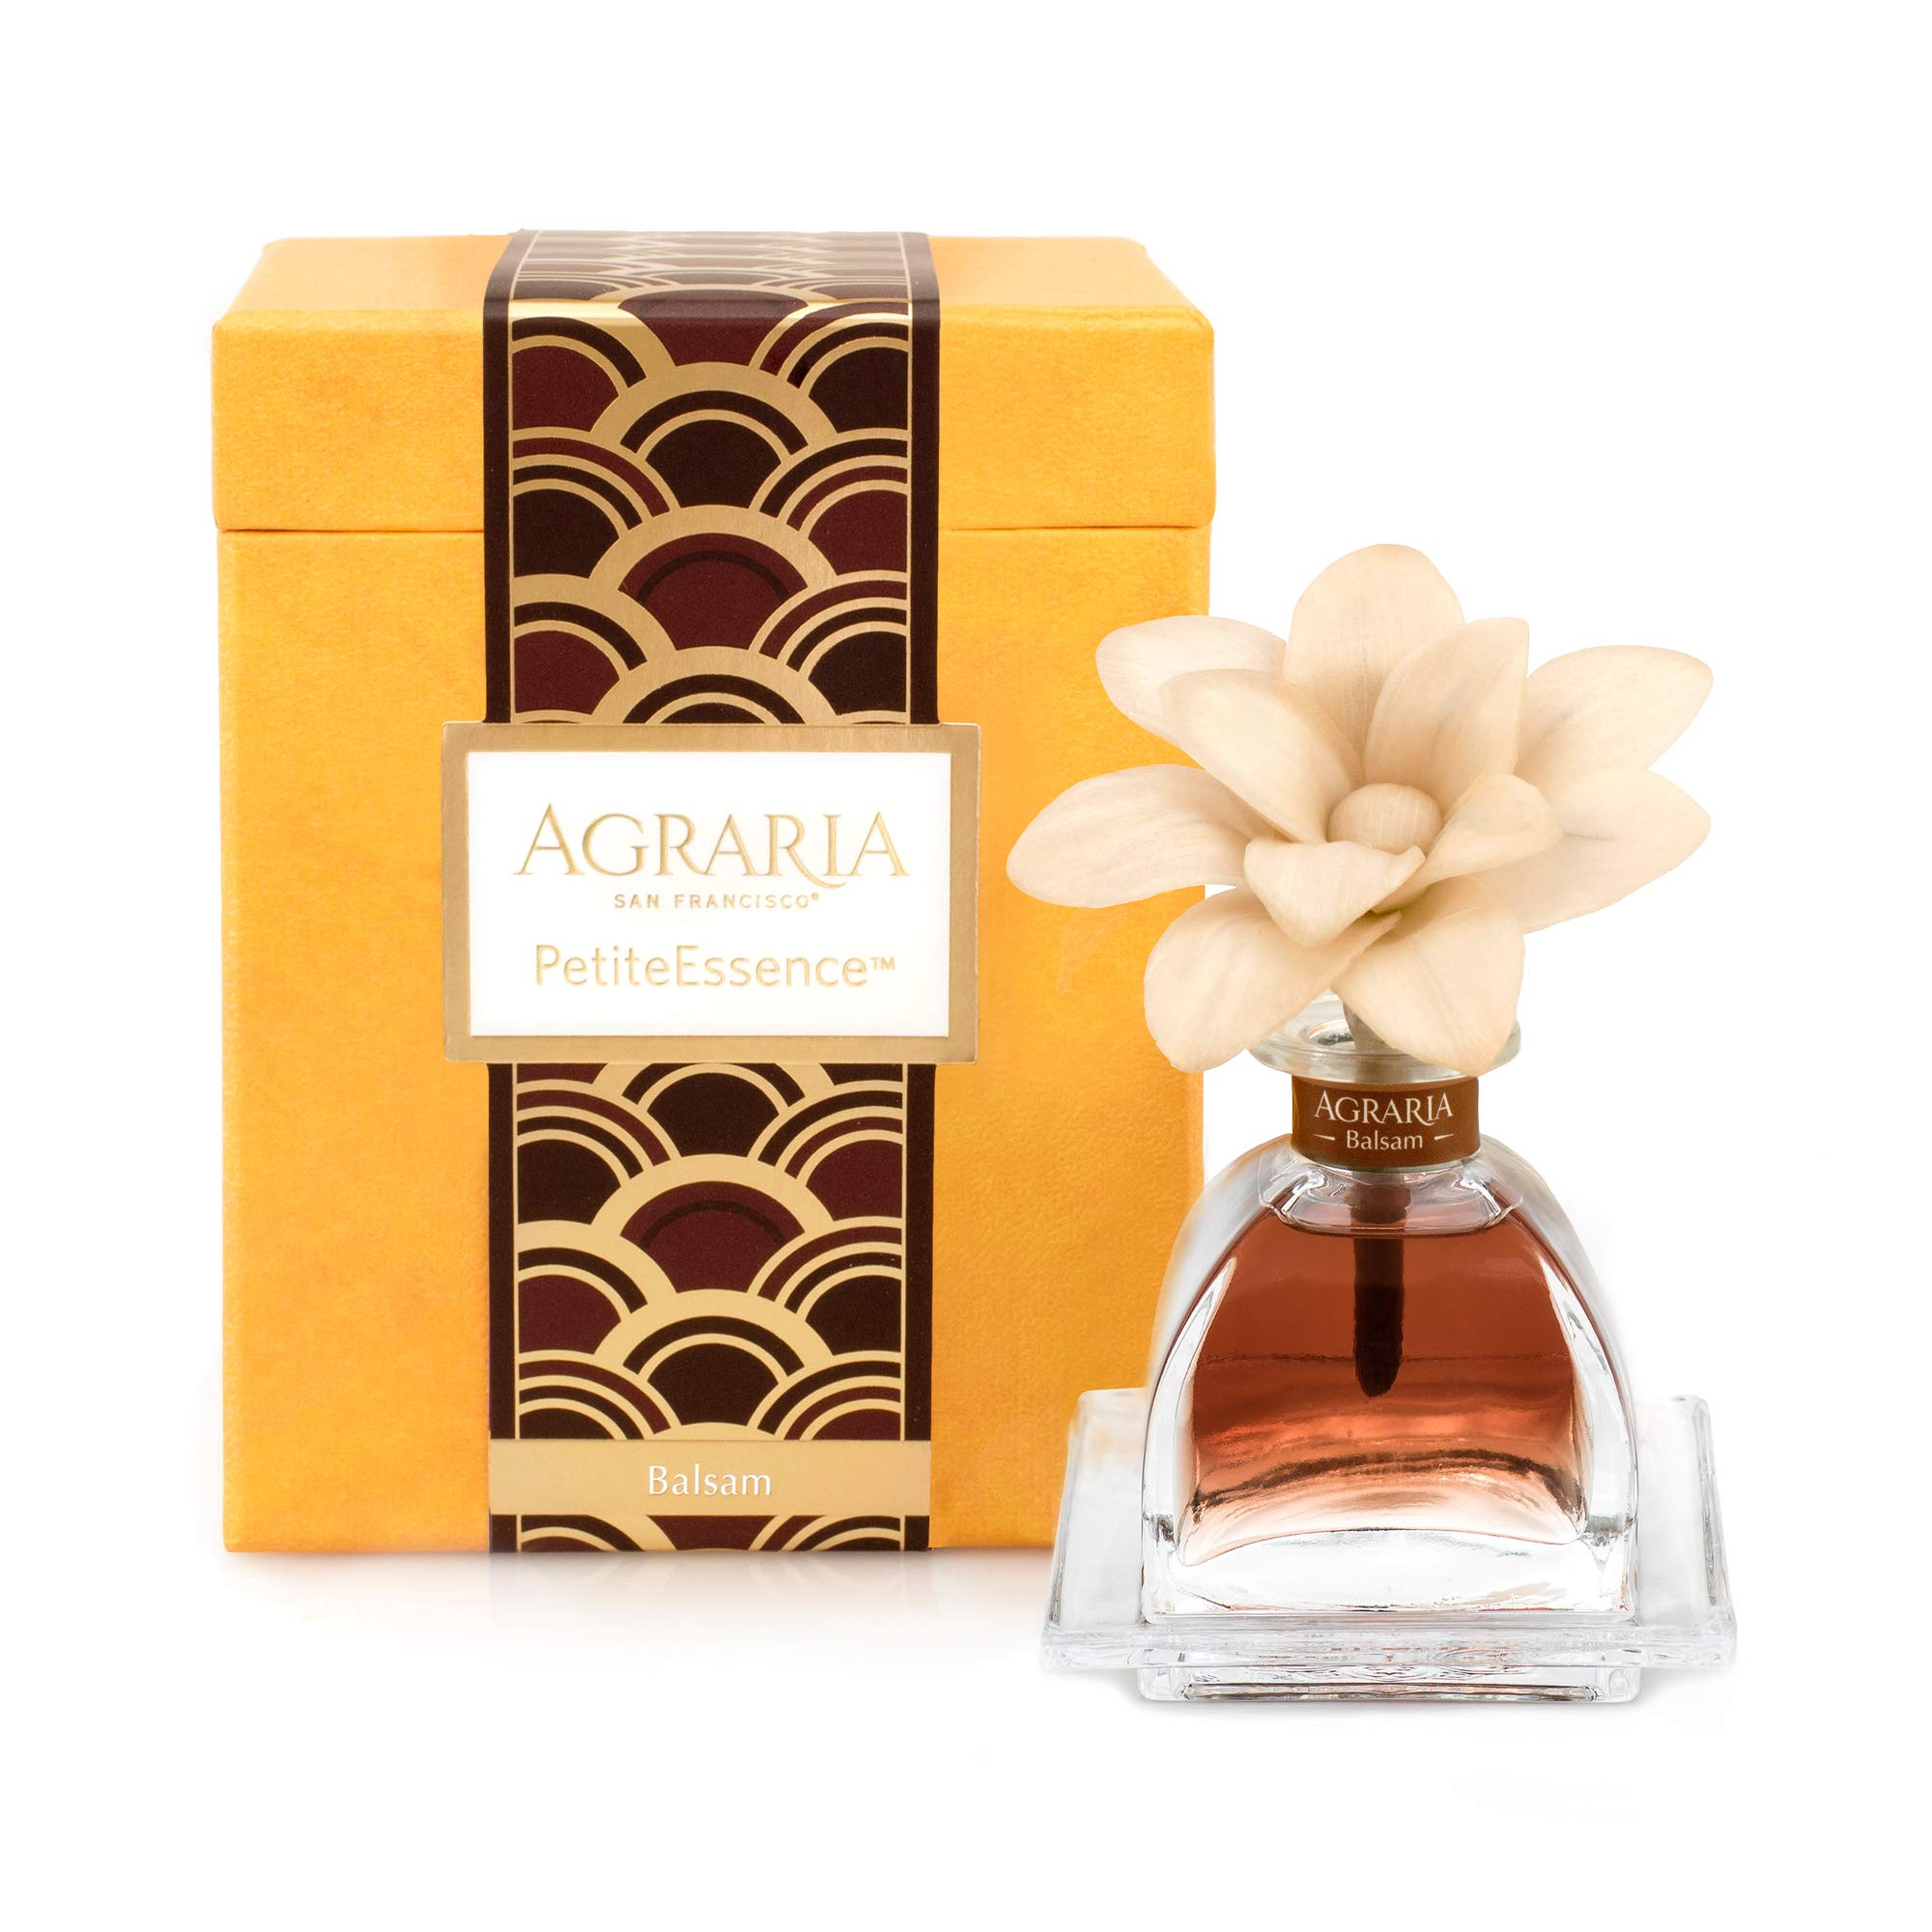 AGRARIA PetiteEssence Luxury Fragrance Diffuser Balsam Scent, Includes 1 Sola Flowers and 7 Reeds by AGRARIA (Image #1)